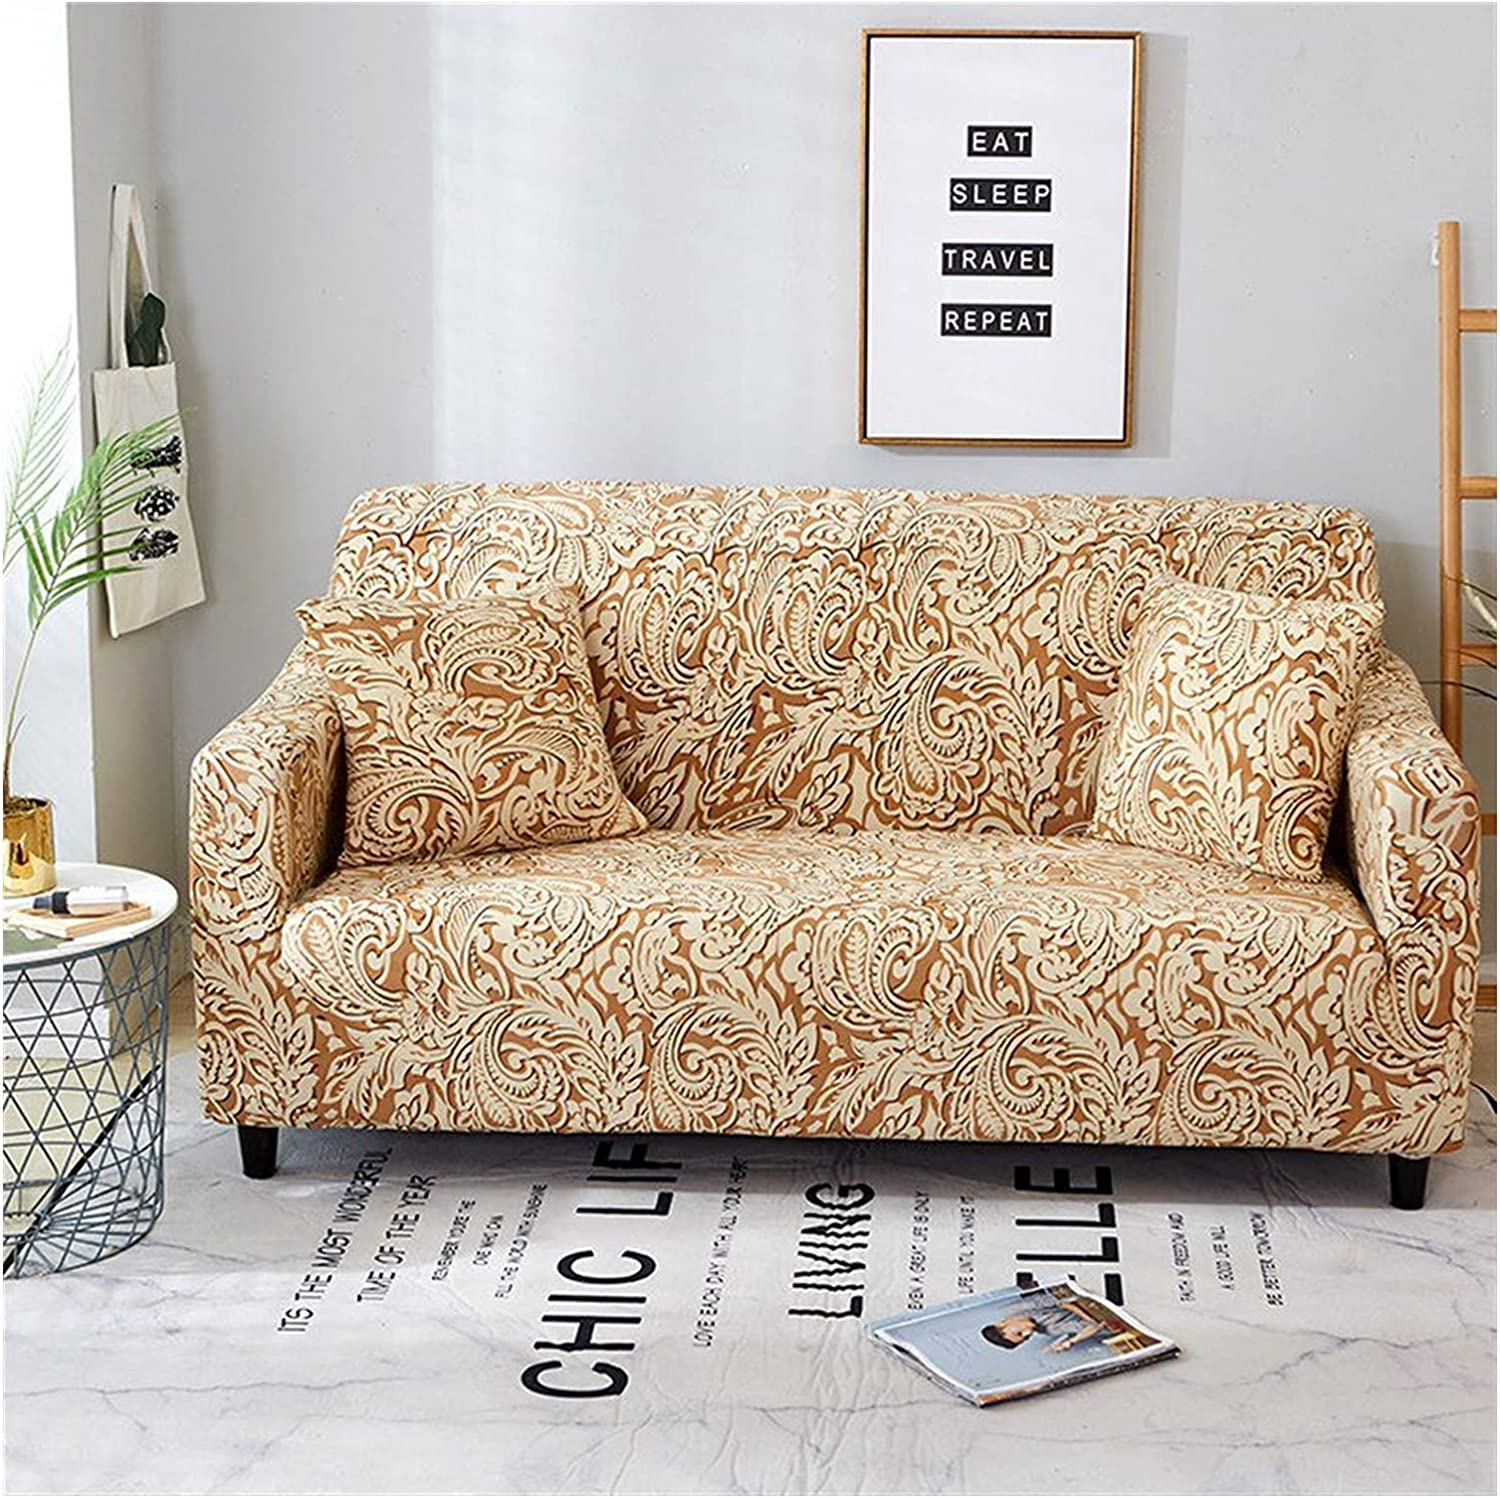 XIAOLI Couch Cover Sofa Covers Flowers Quantity Max 74% OFF limited Leaves and Elastic